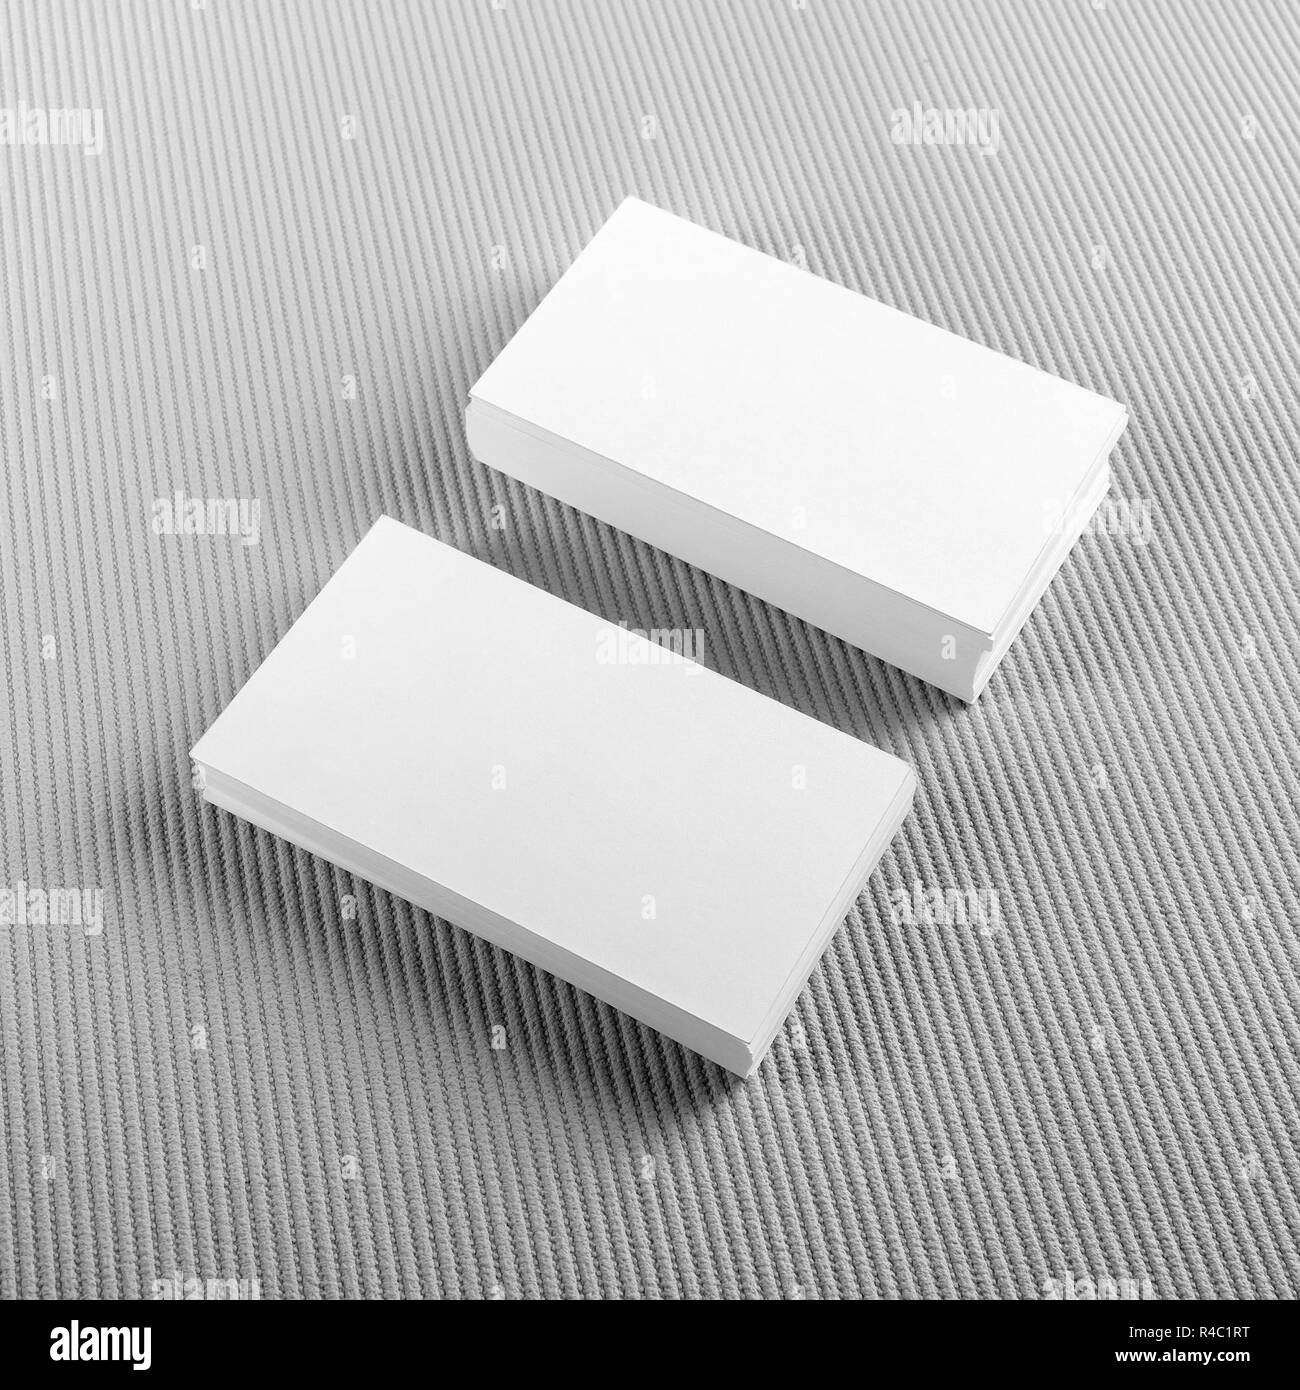 Photo Of Blank Business Cards With Soft Shadows On Gray Background Template For ID